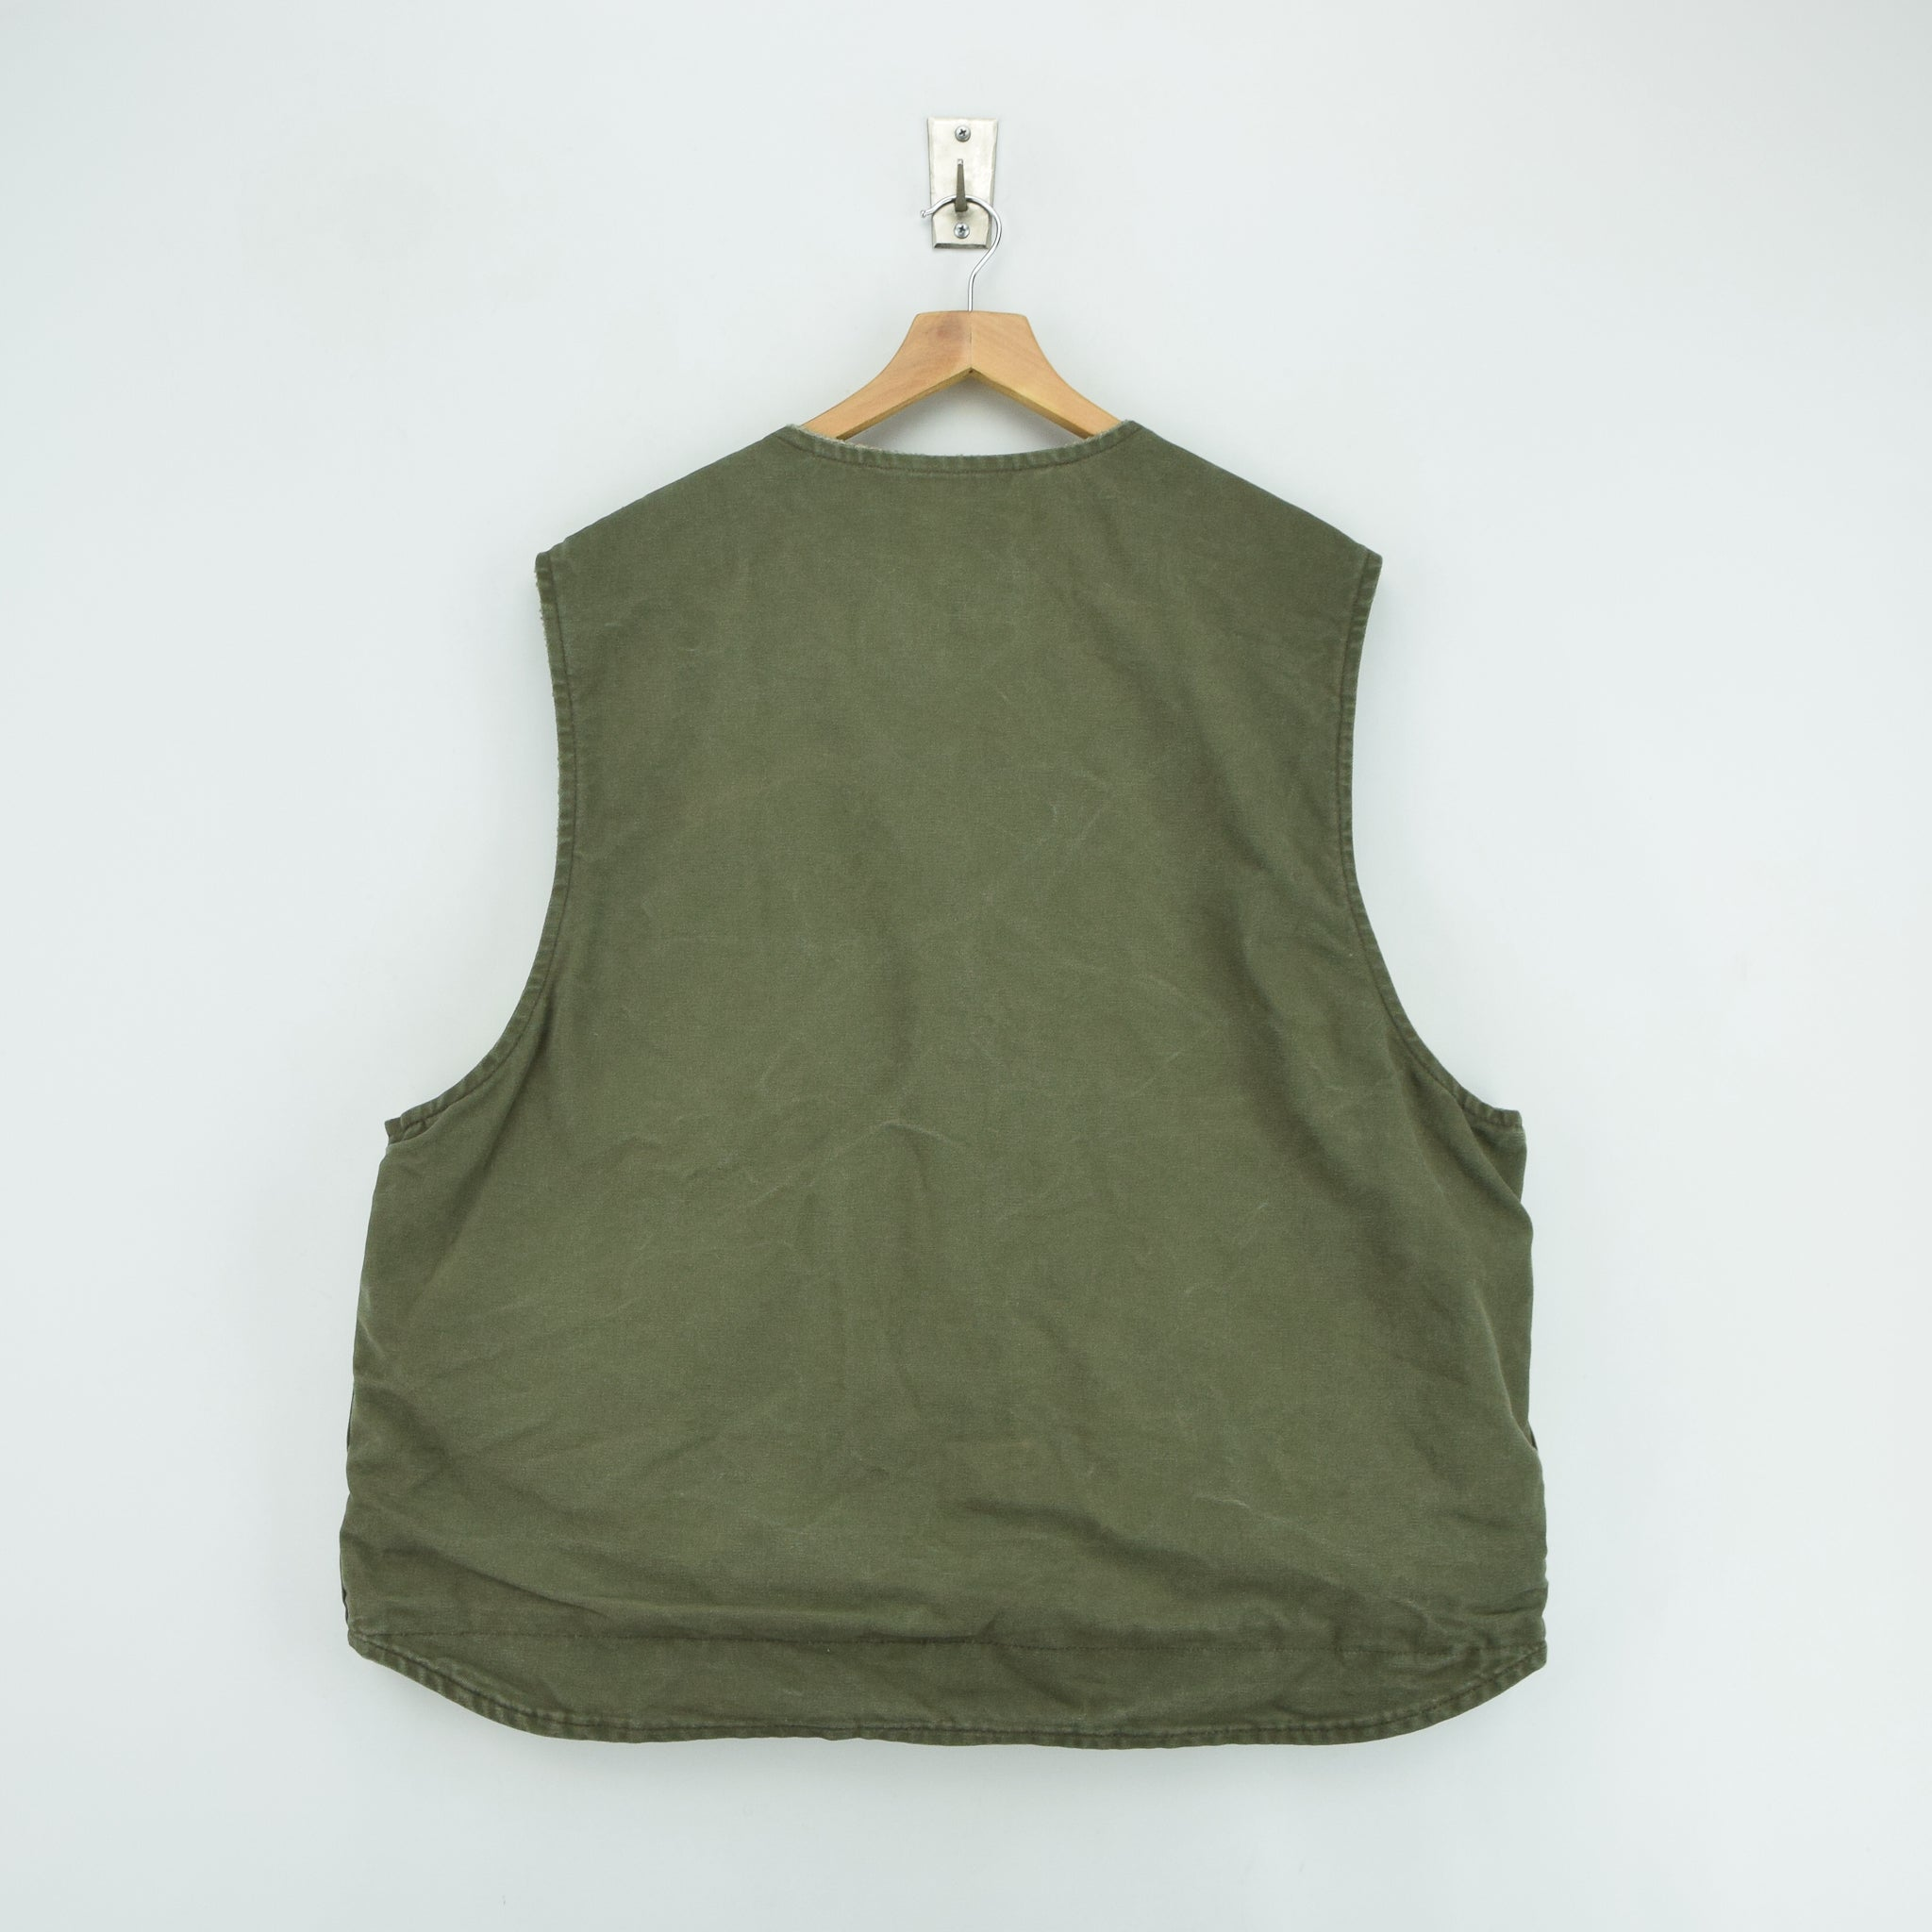 Vintage Carhartt Green Gilet Duck Canvas Cotton Waistcoat Vest Sherpa Lined XXL back